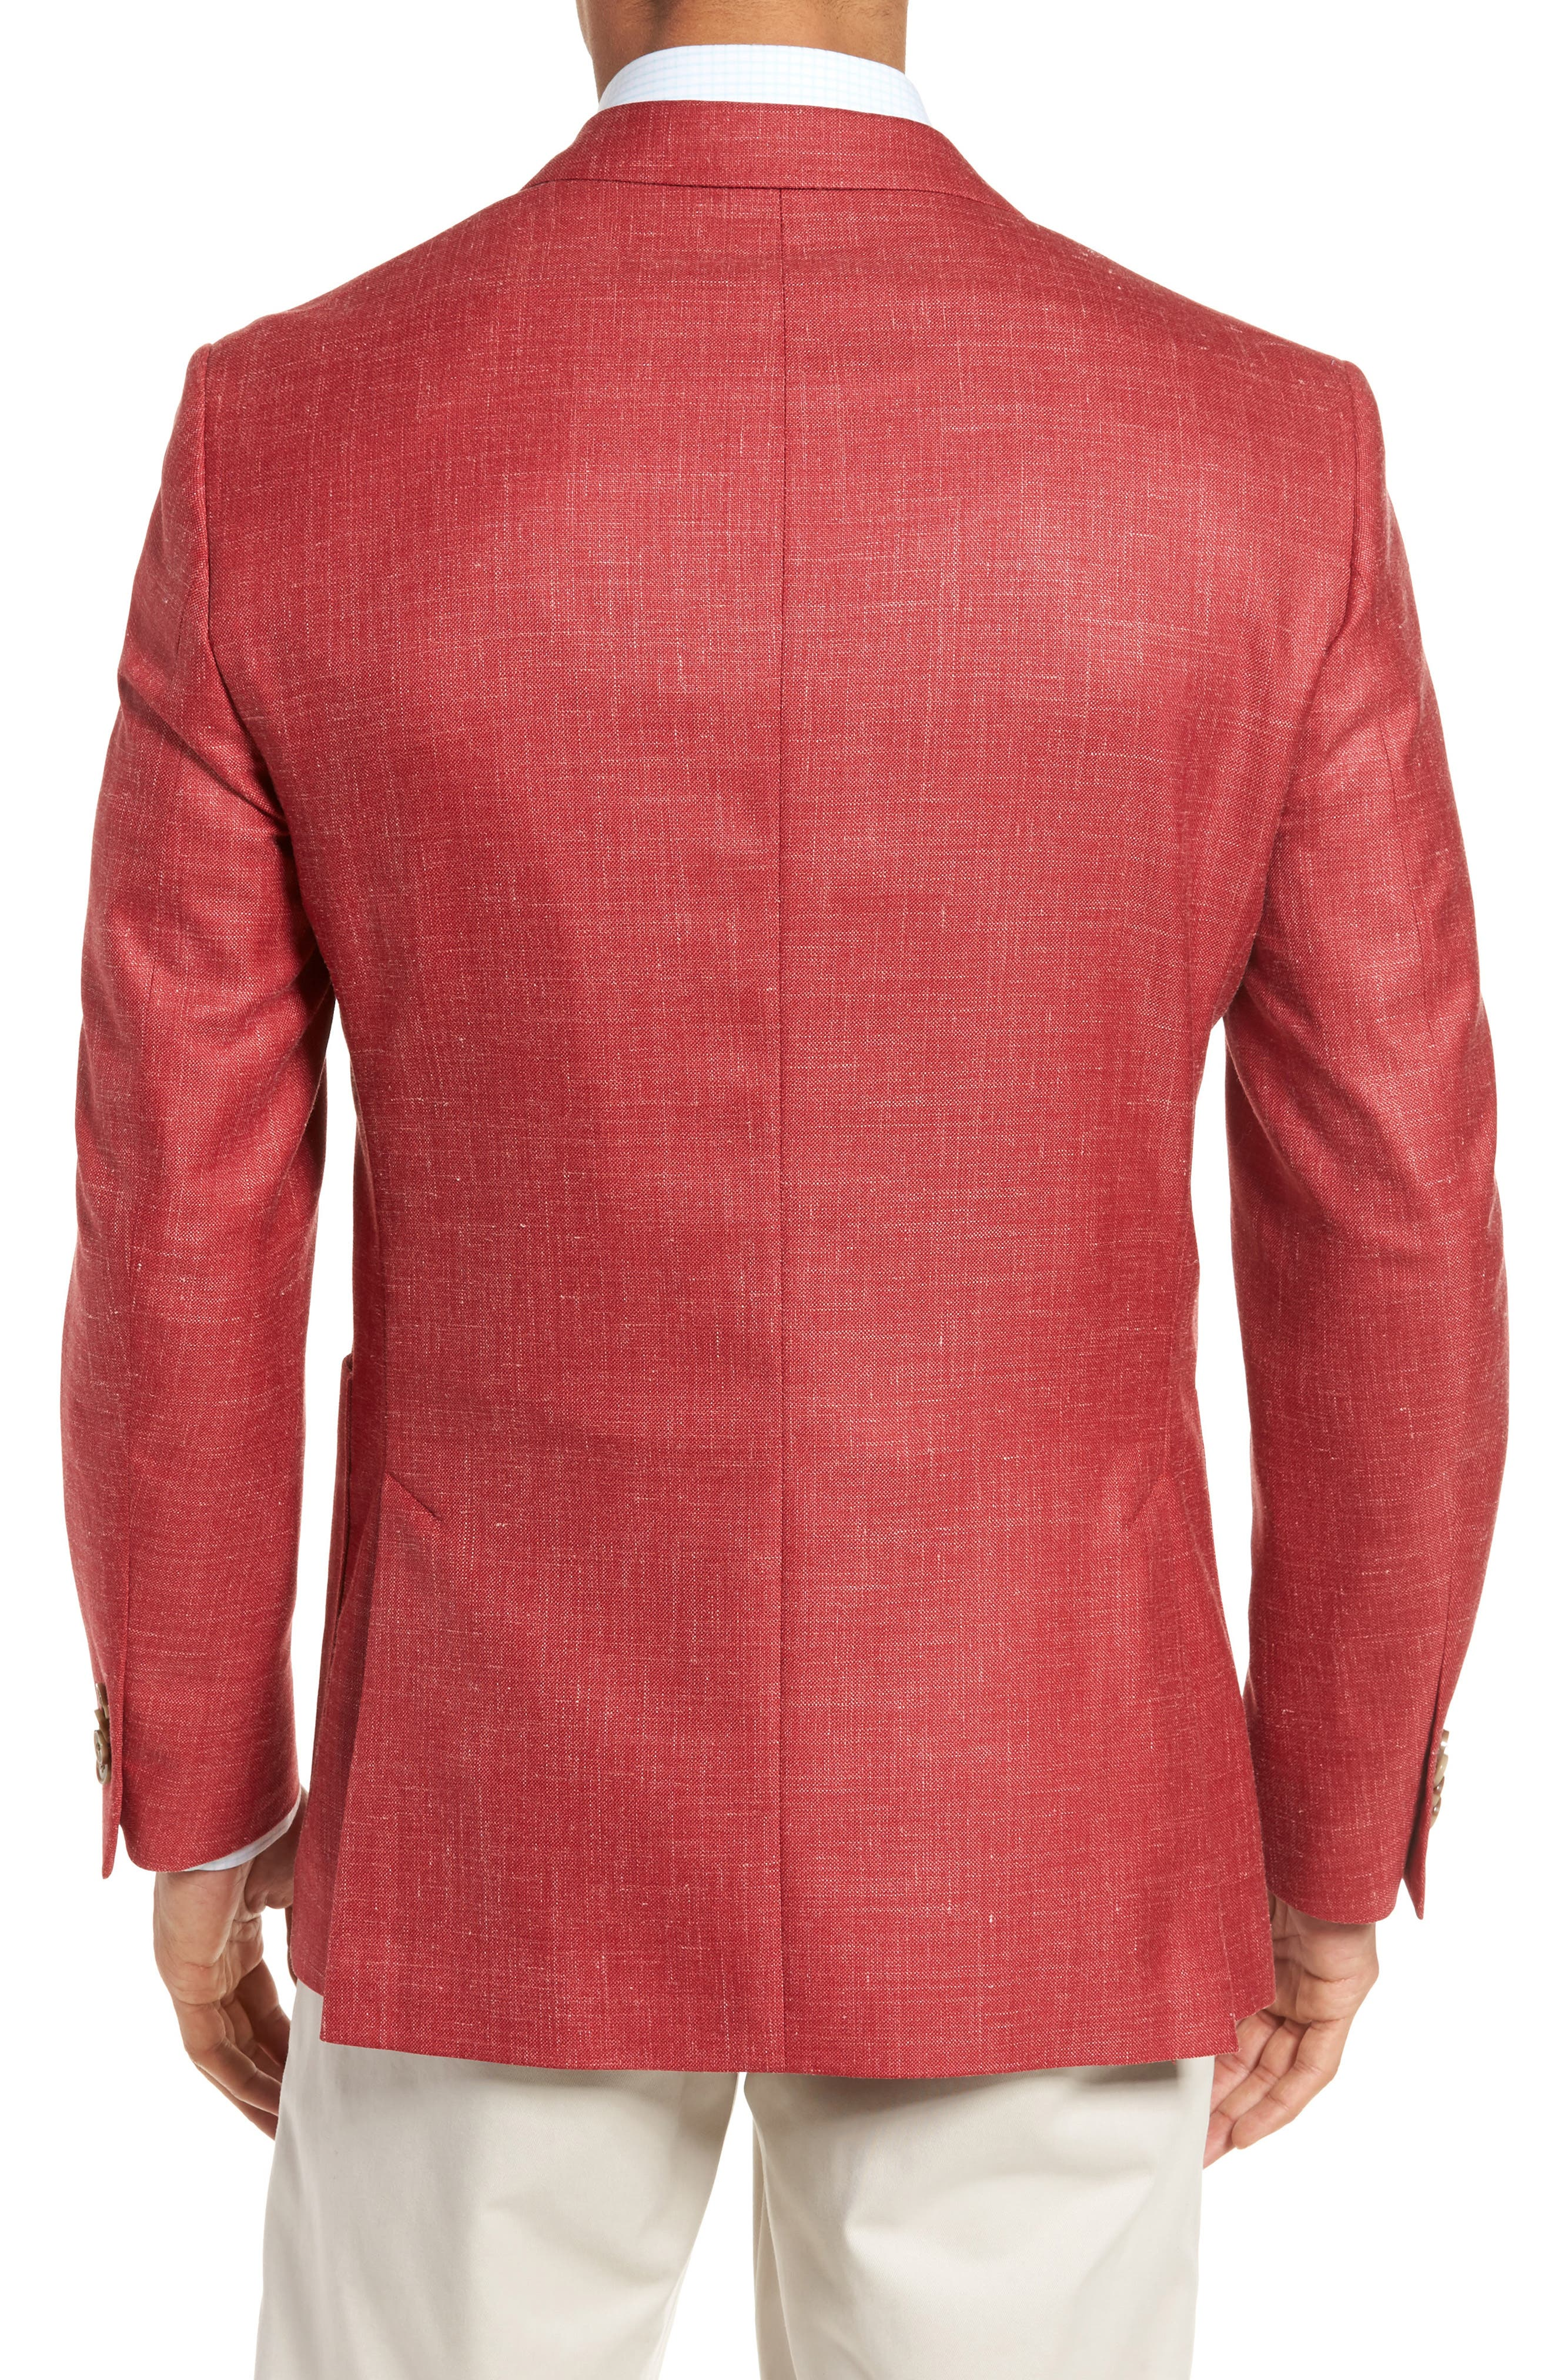 Classic Fit Wool Blend Blazer,                             Alternate thumbnail 2, color,                             Coral